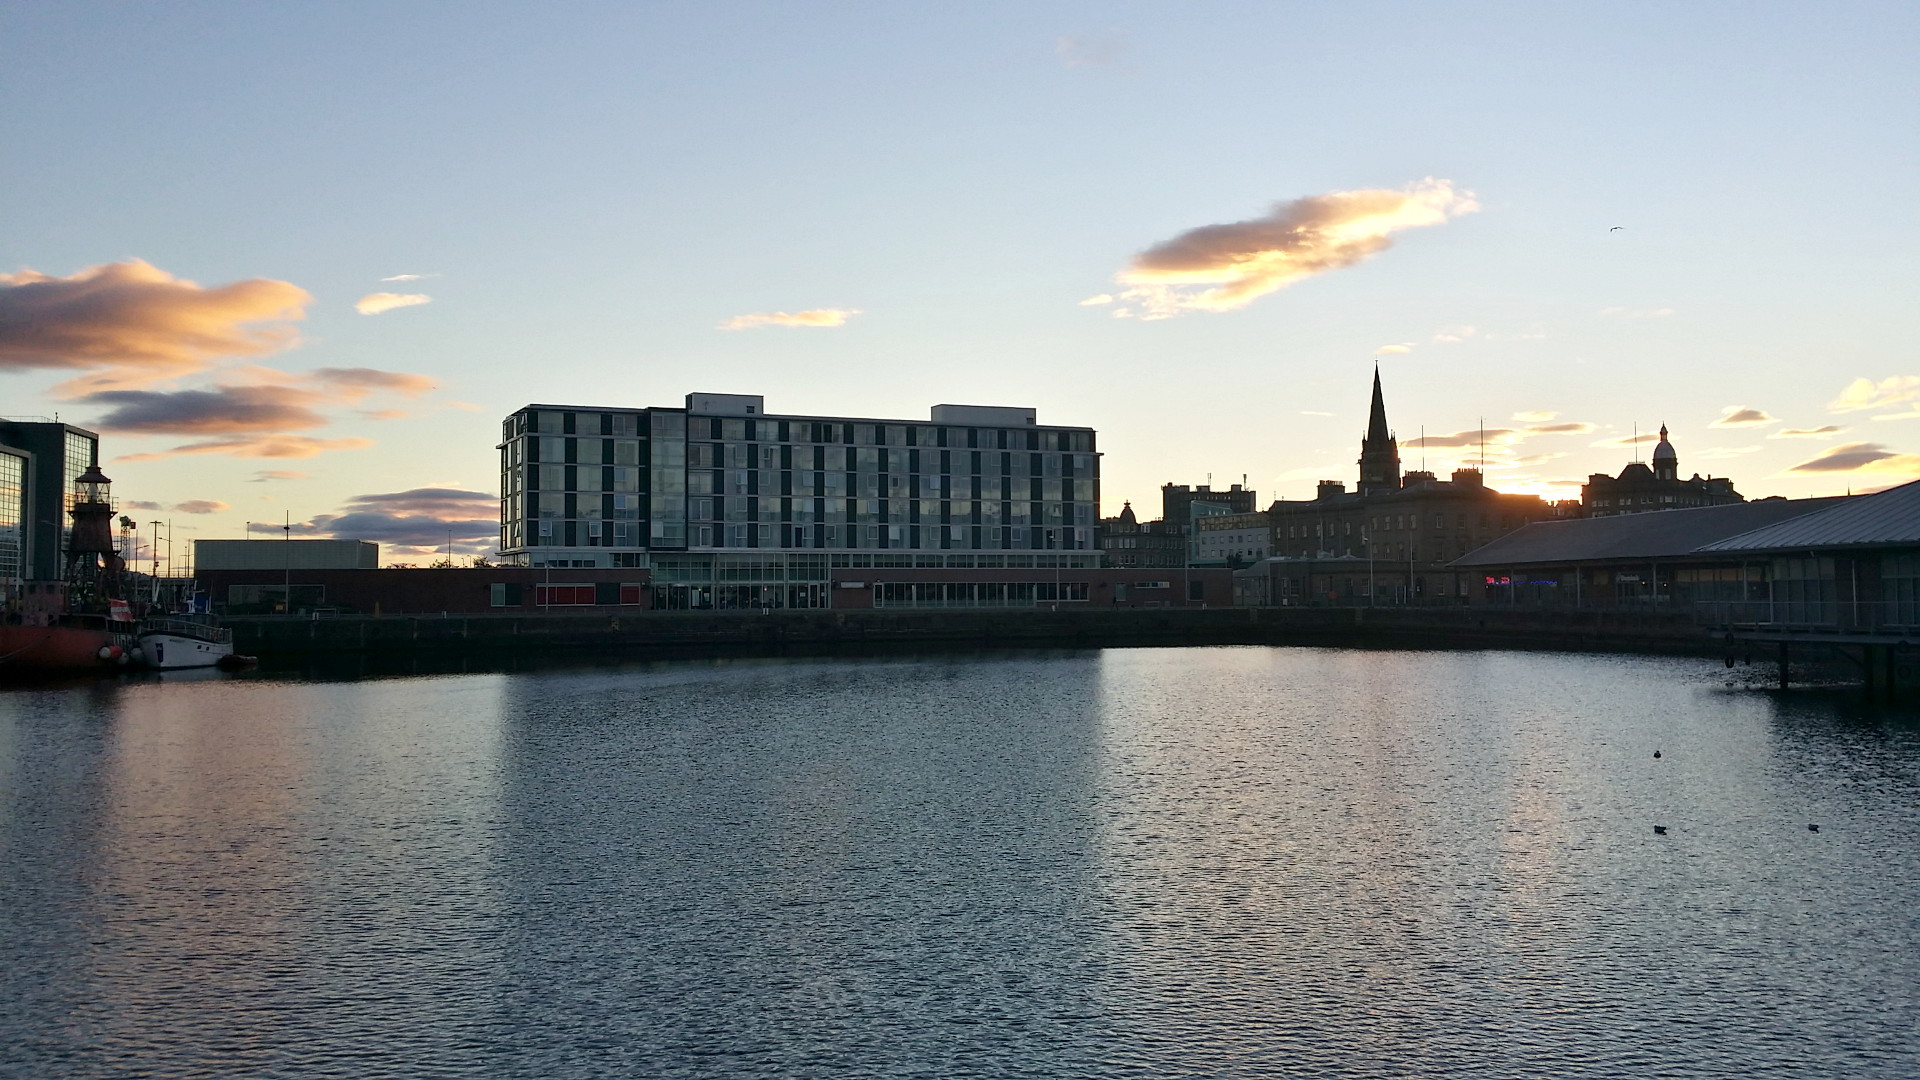 Apex City Quay Hotel & Spa, Dundee